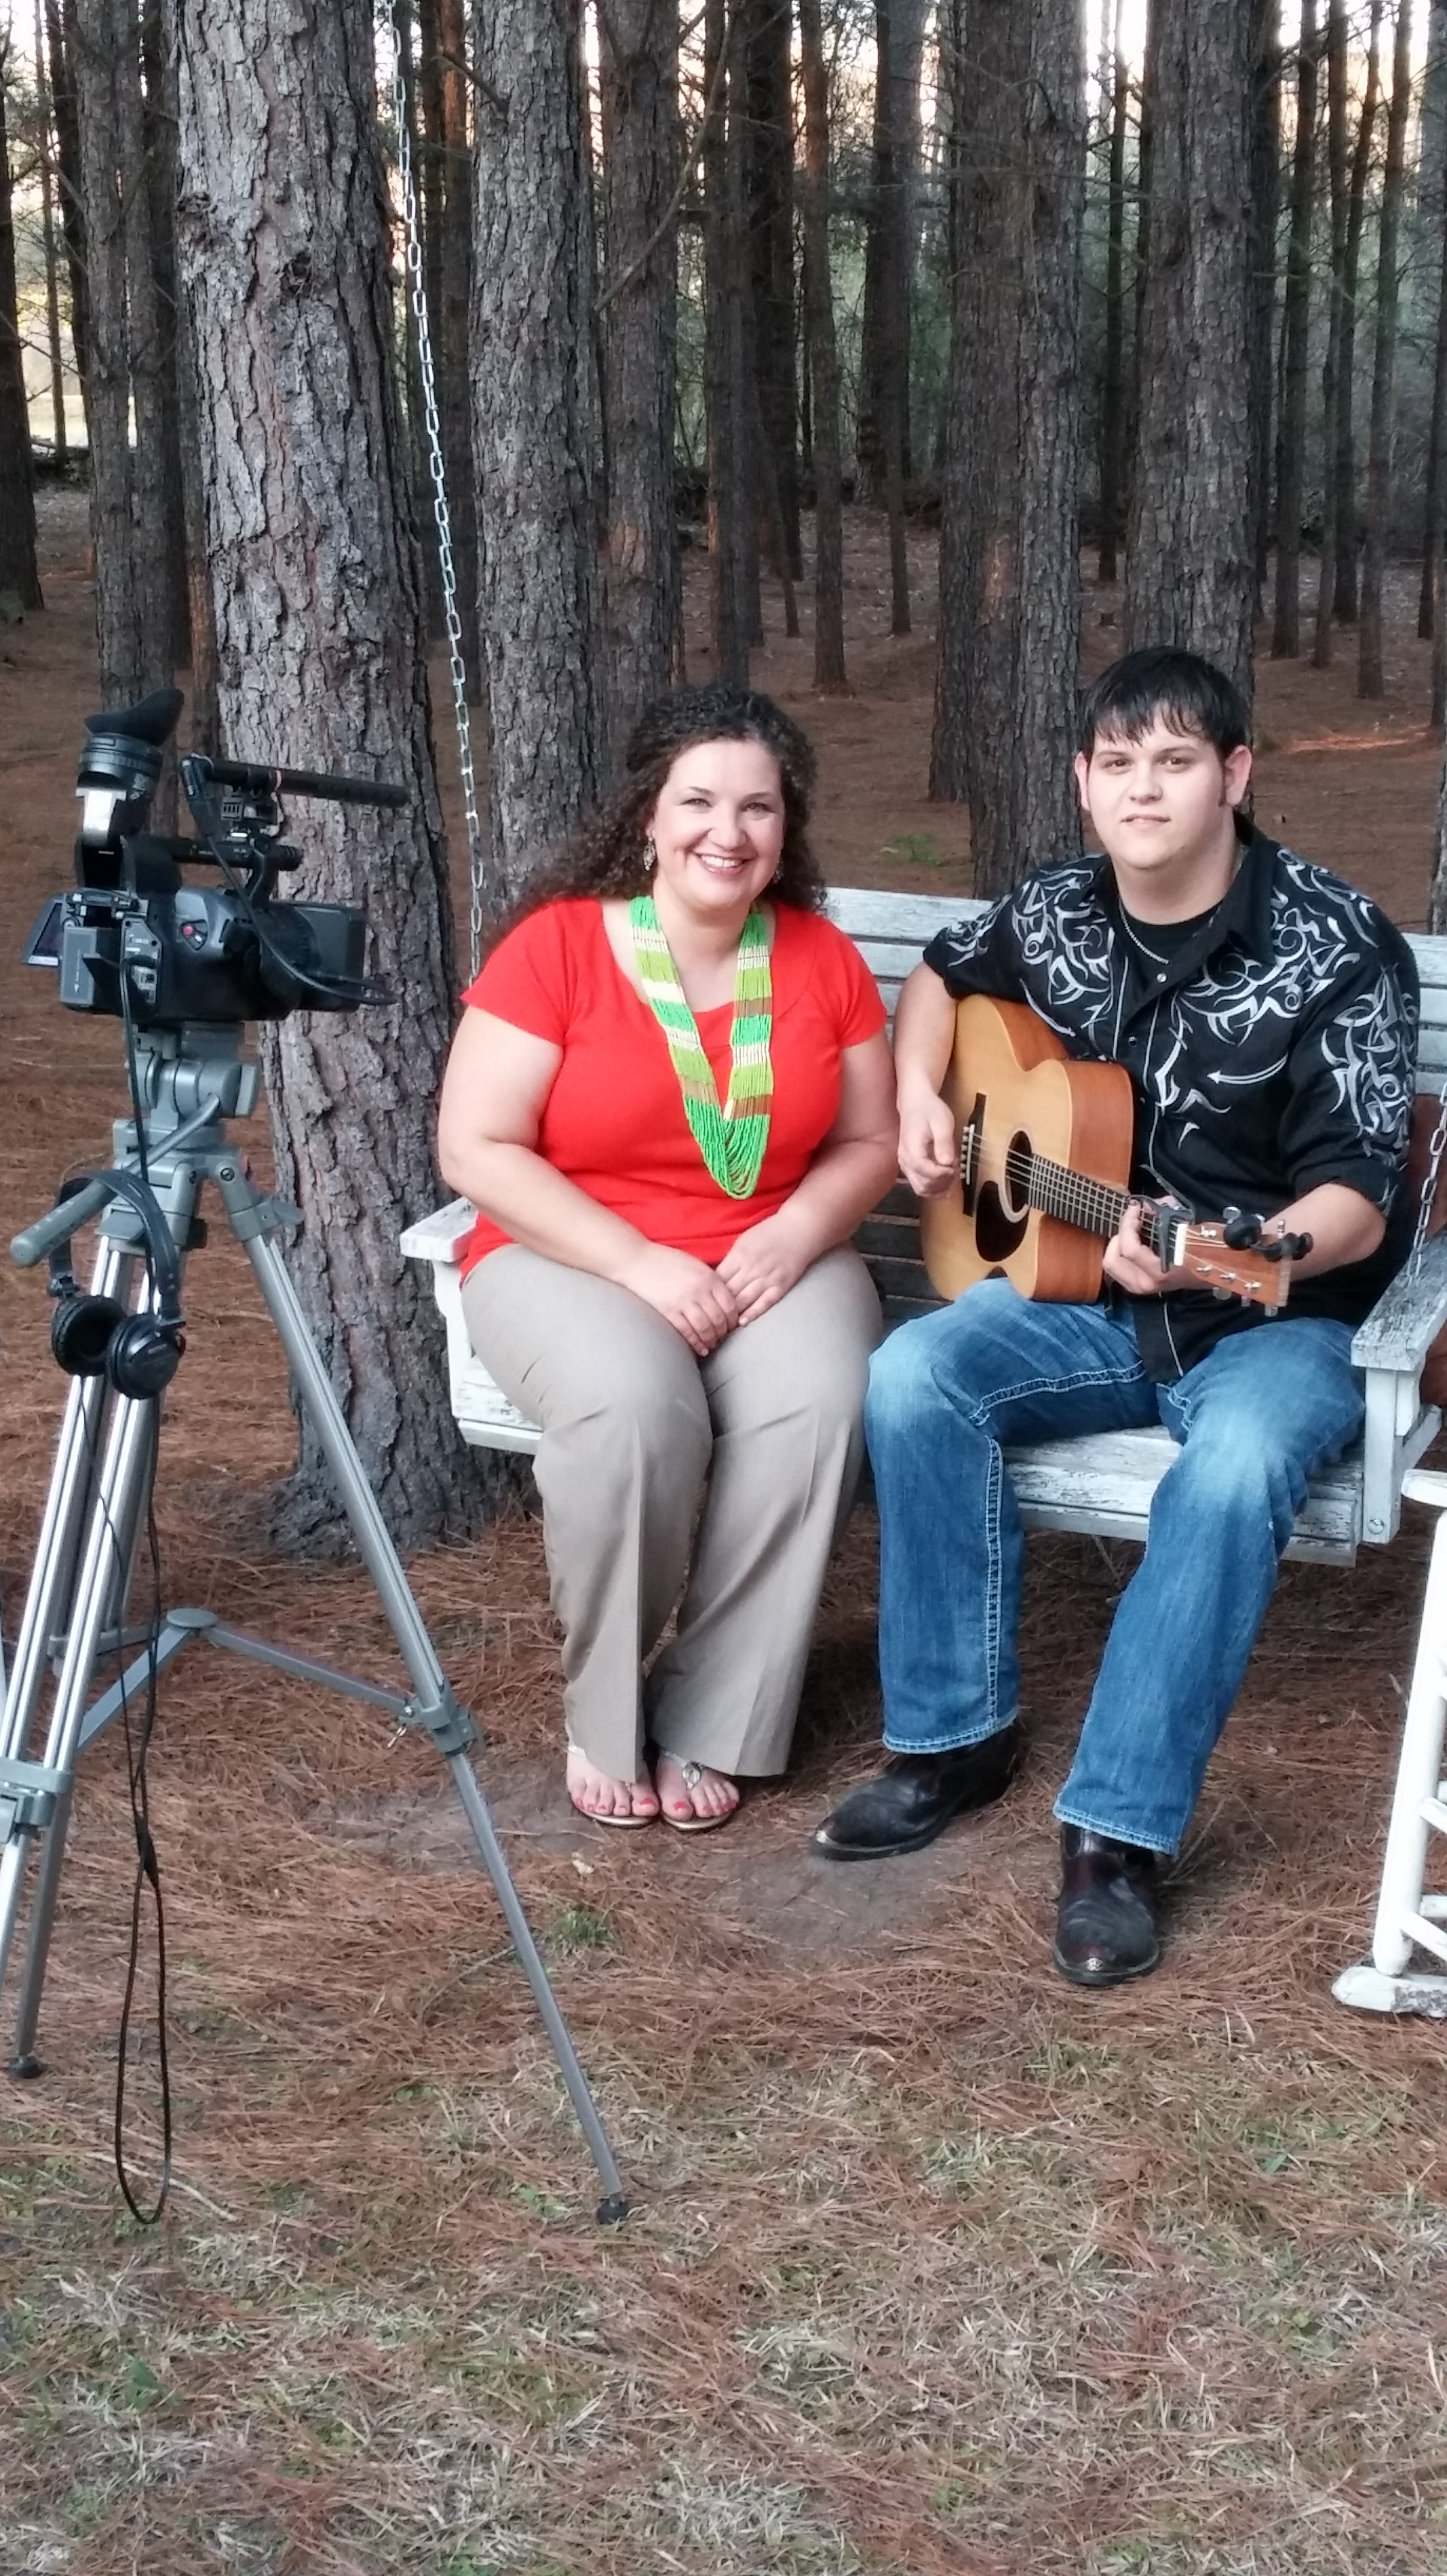 Justin Dukes (right) and I met in the line during American Idol auditions during the summer of 2011 in Charleston, SC.